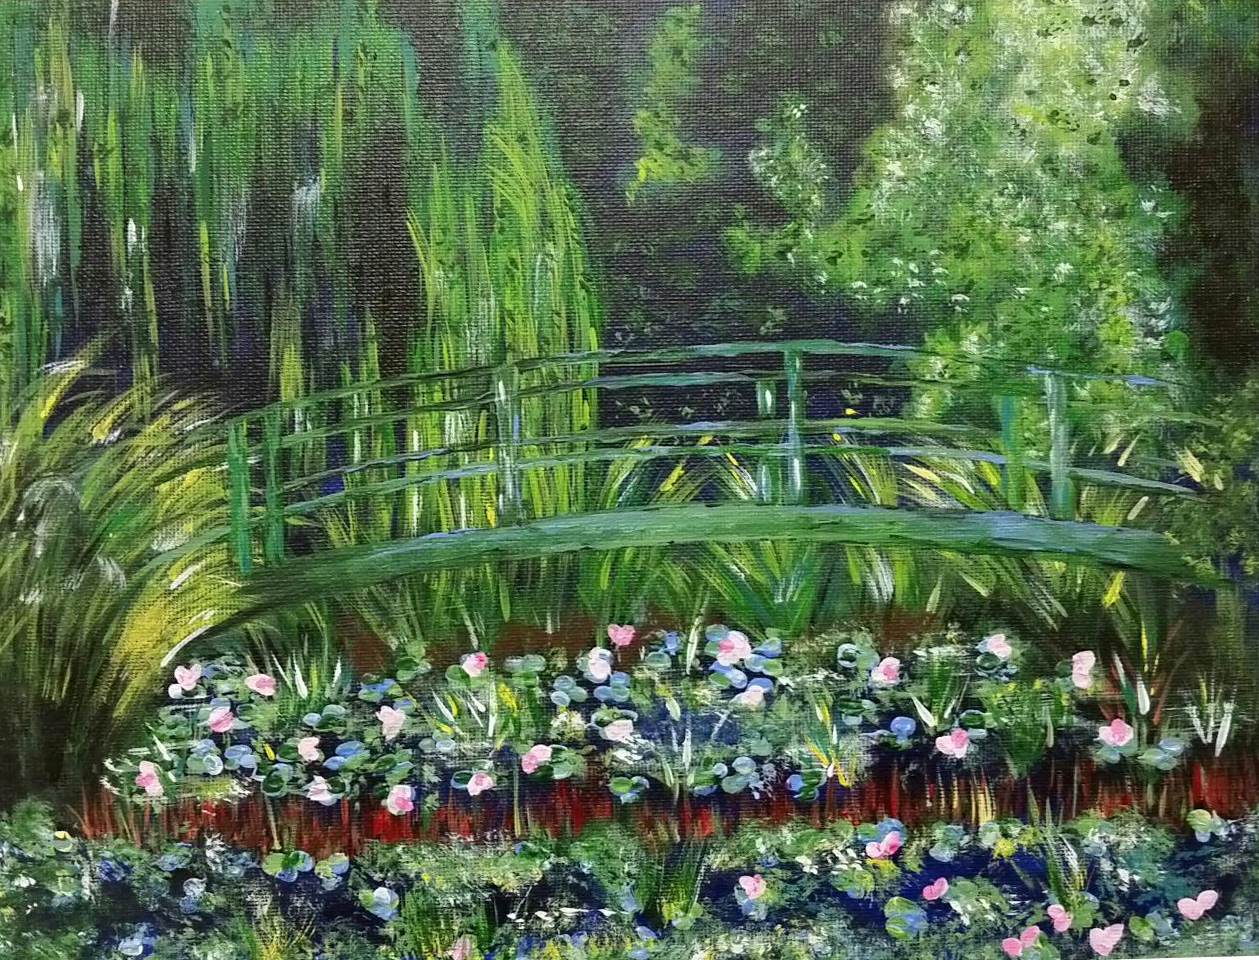 Rendition of Monet's The Japanese Footbridge by Anita